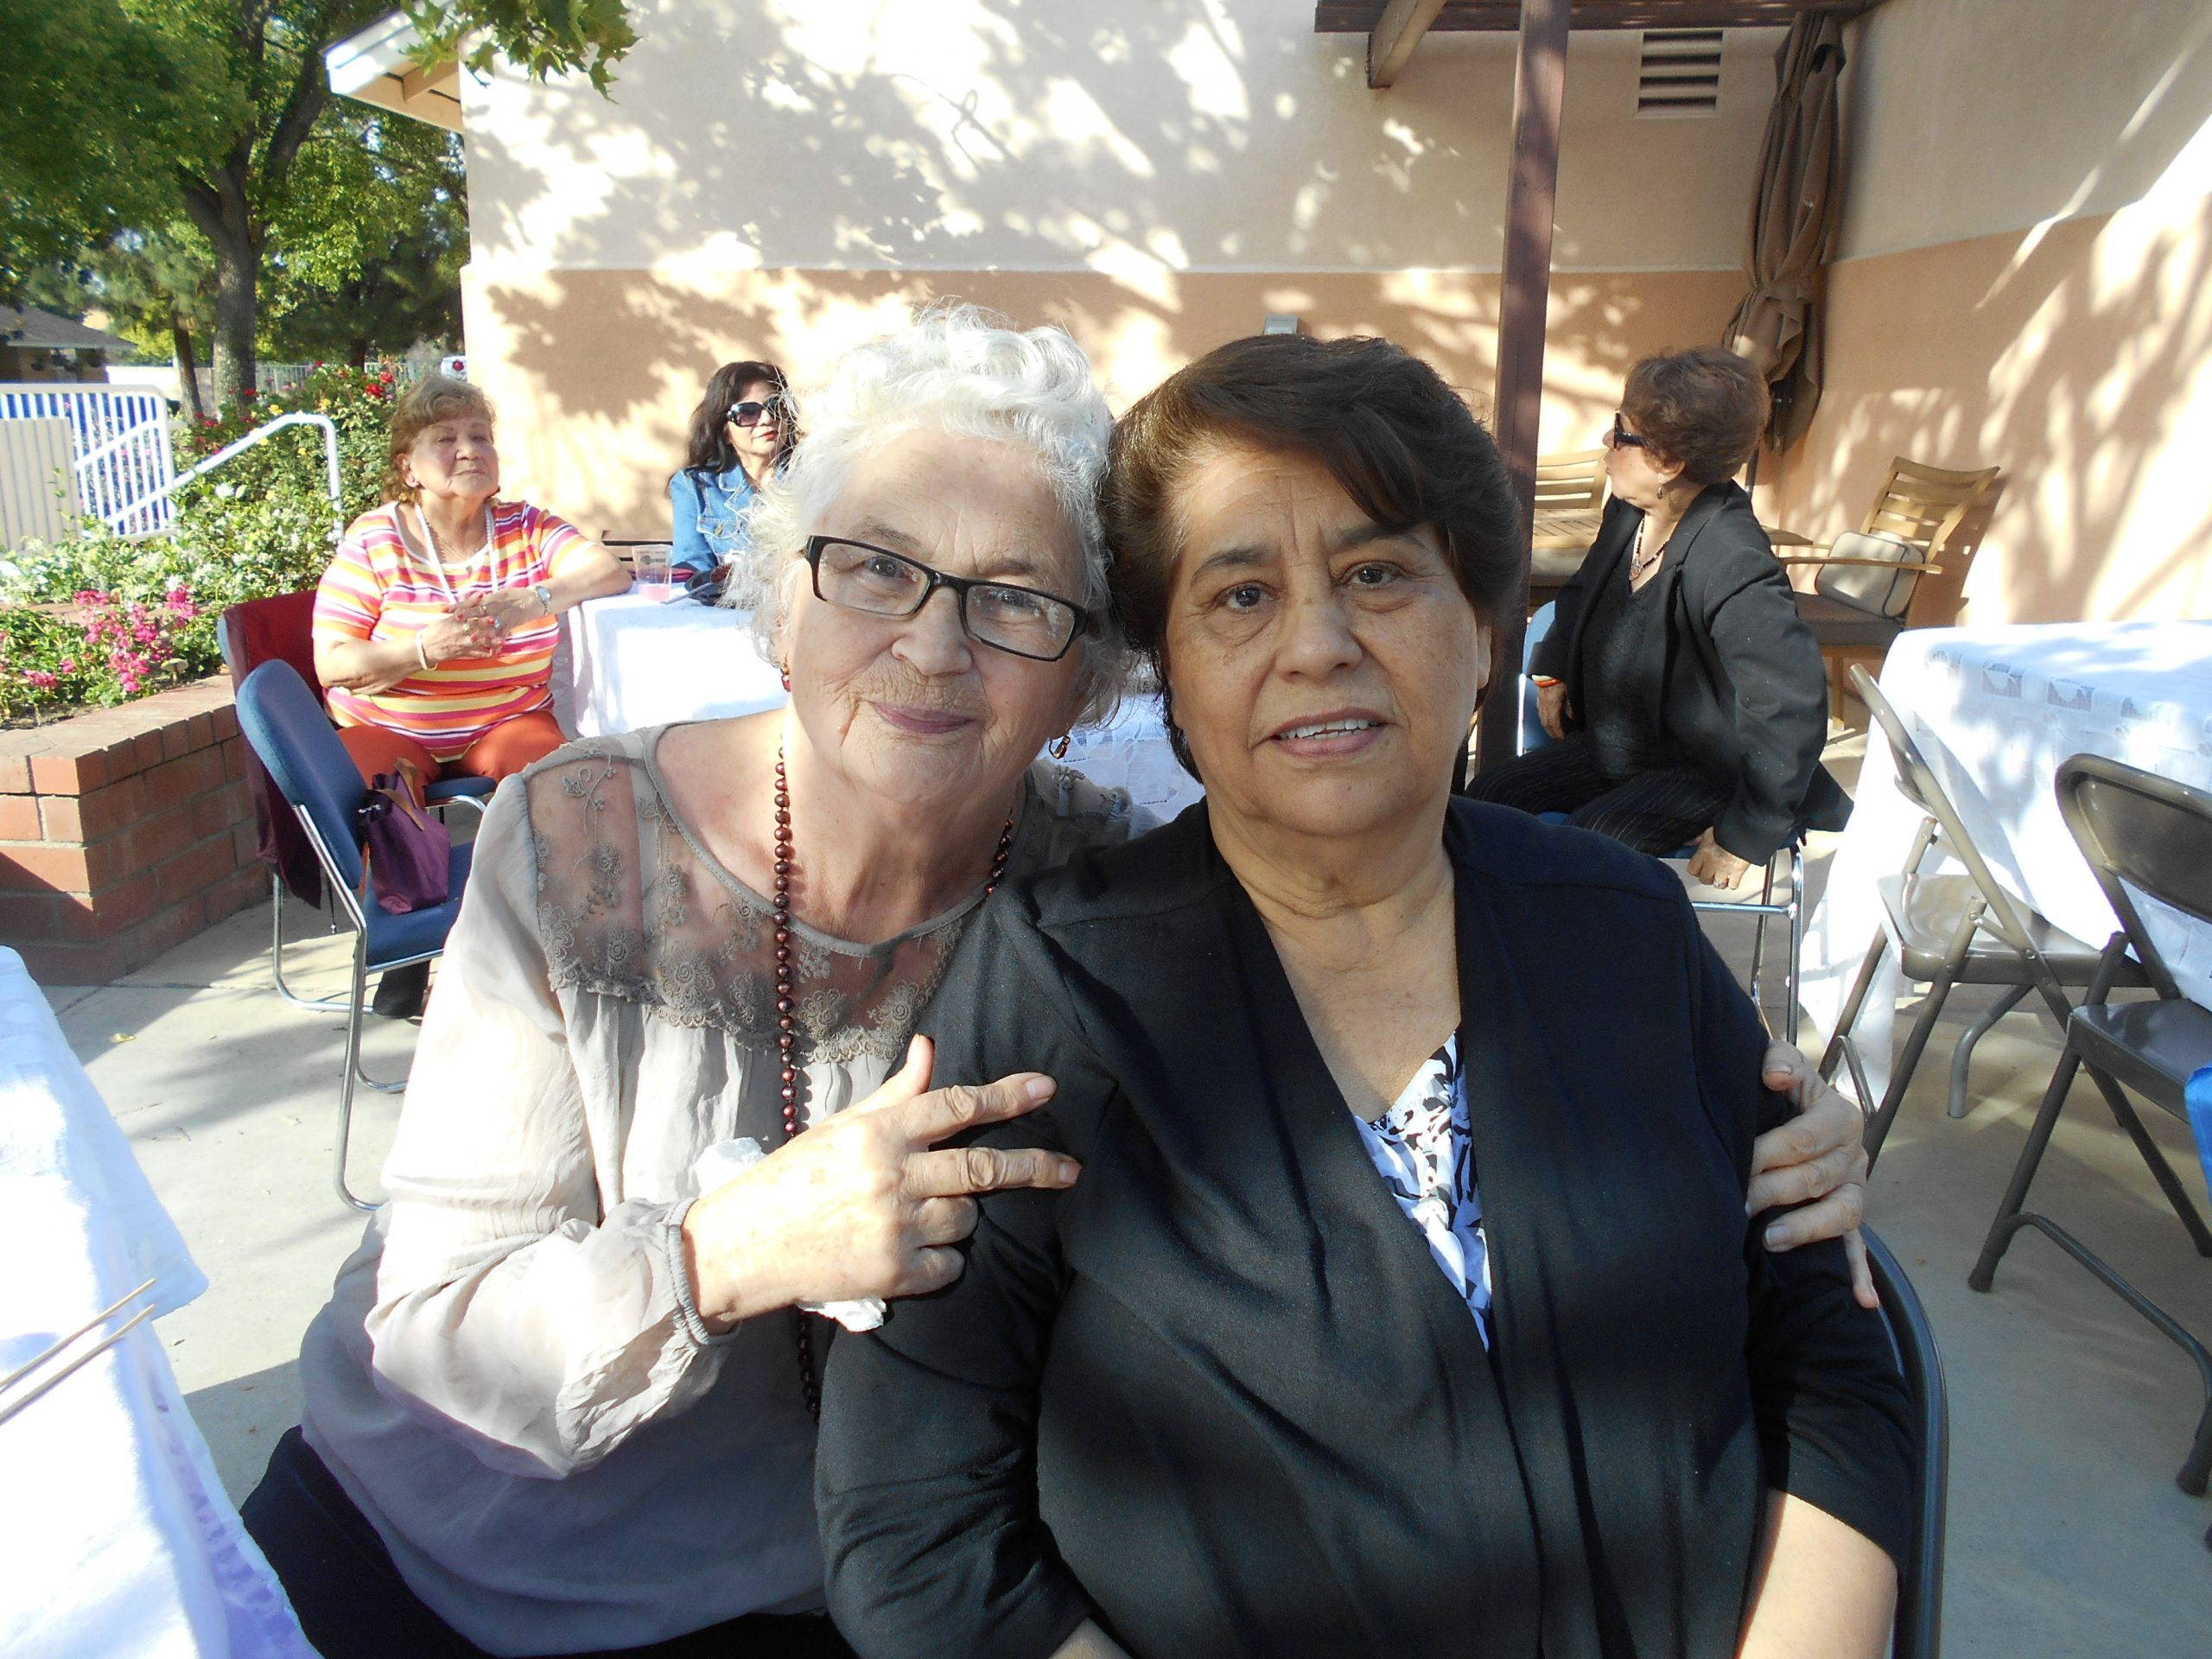 Two senior women, one with white hair and one with brown hair, sitting and posing for a picture at Cambridge Gardens senior housing community.